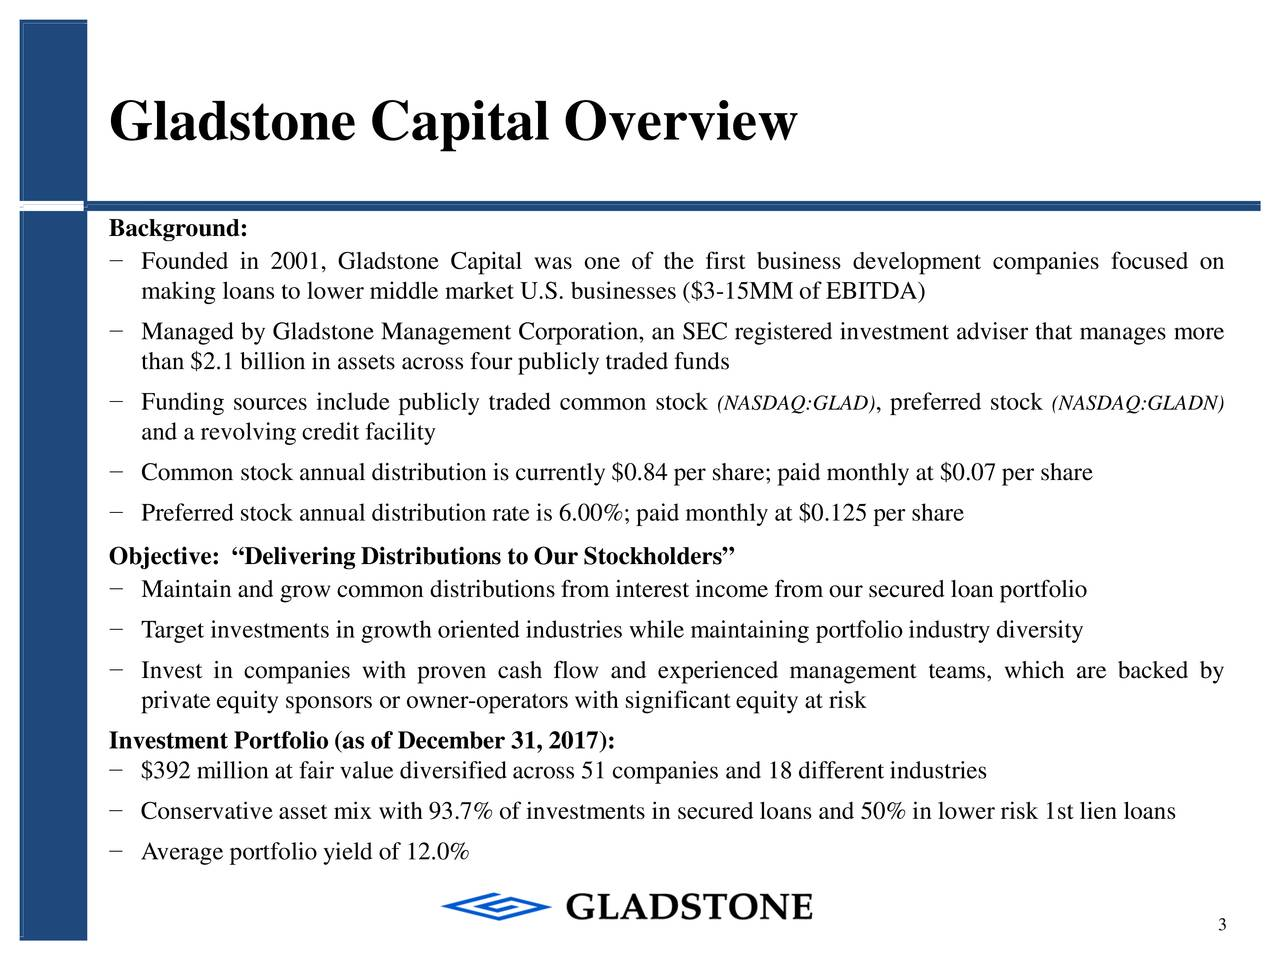 """Background: − Founded in 2001, Gladstone Capital was one of the first business development companies focused on making loans to lower middle market U.S. businesses ($3-15MM of EBITDA) − Managed by Gladstone Management Corporation, an SEC registered investment adviser that manages more than $2.1 billion in assets across four publicly traded funds − Funding sources include publicly traded common stock (NASDAQ:GLAD) , preferred stoc(NASDAQ:GLADN) and a revolving credit facility − Commonstock annual distribution is currently $0.84 per share; paid monthly at $0.07 per share − Preferred stock annual distribution rate is 6.00%; paid monthly at $0.125 per share Objective: """"Delivering Distributions to Our Stockholders"""" − Maintain and grow commondistributions from interest income from our secured loan portfolio − Target investments in growth oriented industries while maintaining portfolioindustry diversity − Invest in companies with proven cash flow and experienced management teams, which are backed by private equity sponsors or owner-operatorswith significant equity at risk Investment Portfolio (as of December 31, 2017): − $392 million at fair value diversified across 51 companies and 18 different industries − Conservative asset mix with 93.7% of investments in secured loans and 50% in lower risk 1st lien loans − Average portfolio yield of 12.0% 3"""